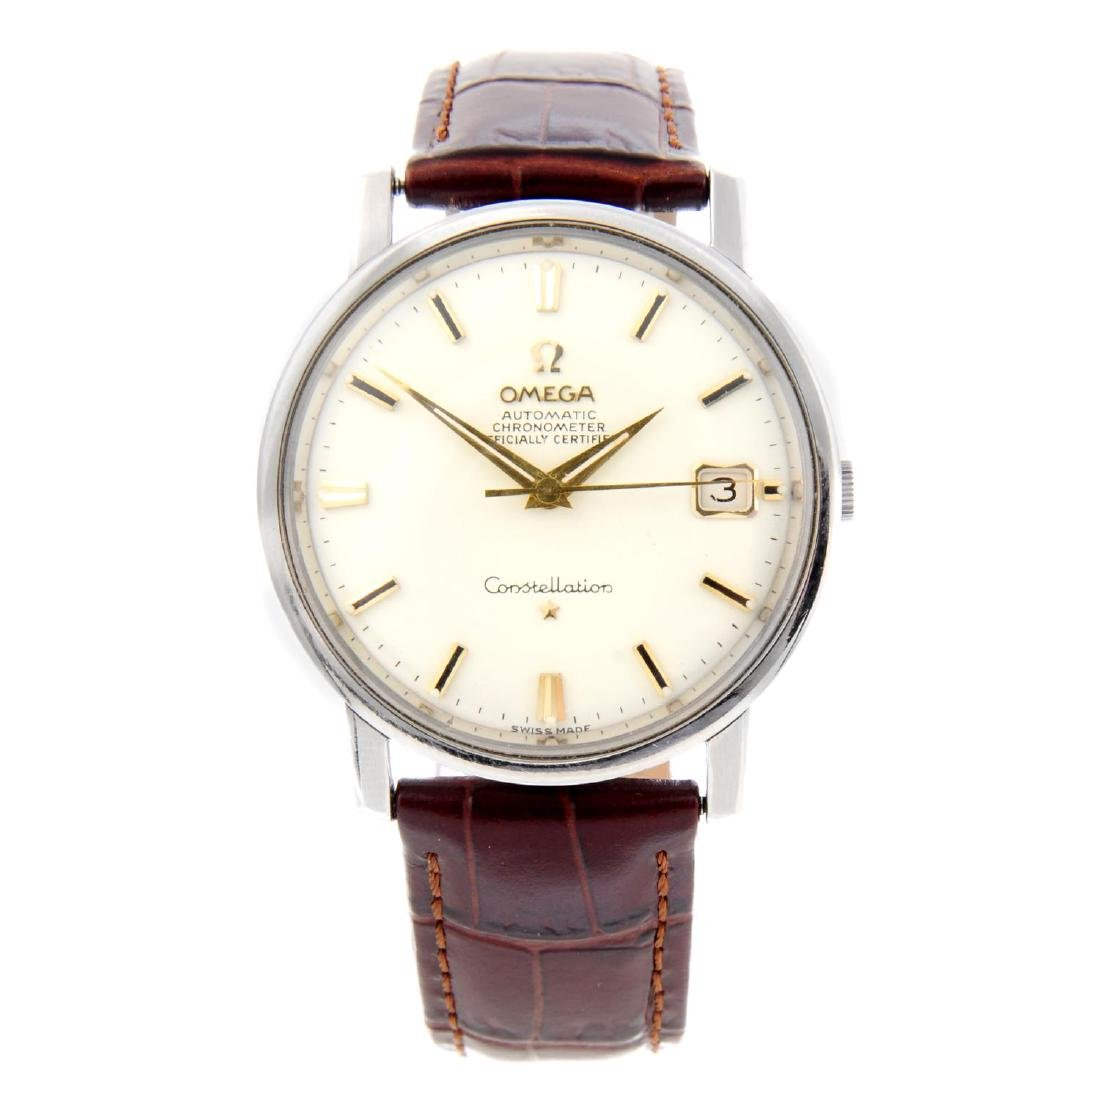 OMEGA - a gentleman's Constellation wrist watch.